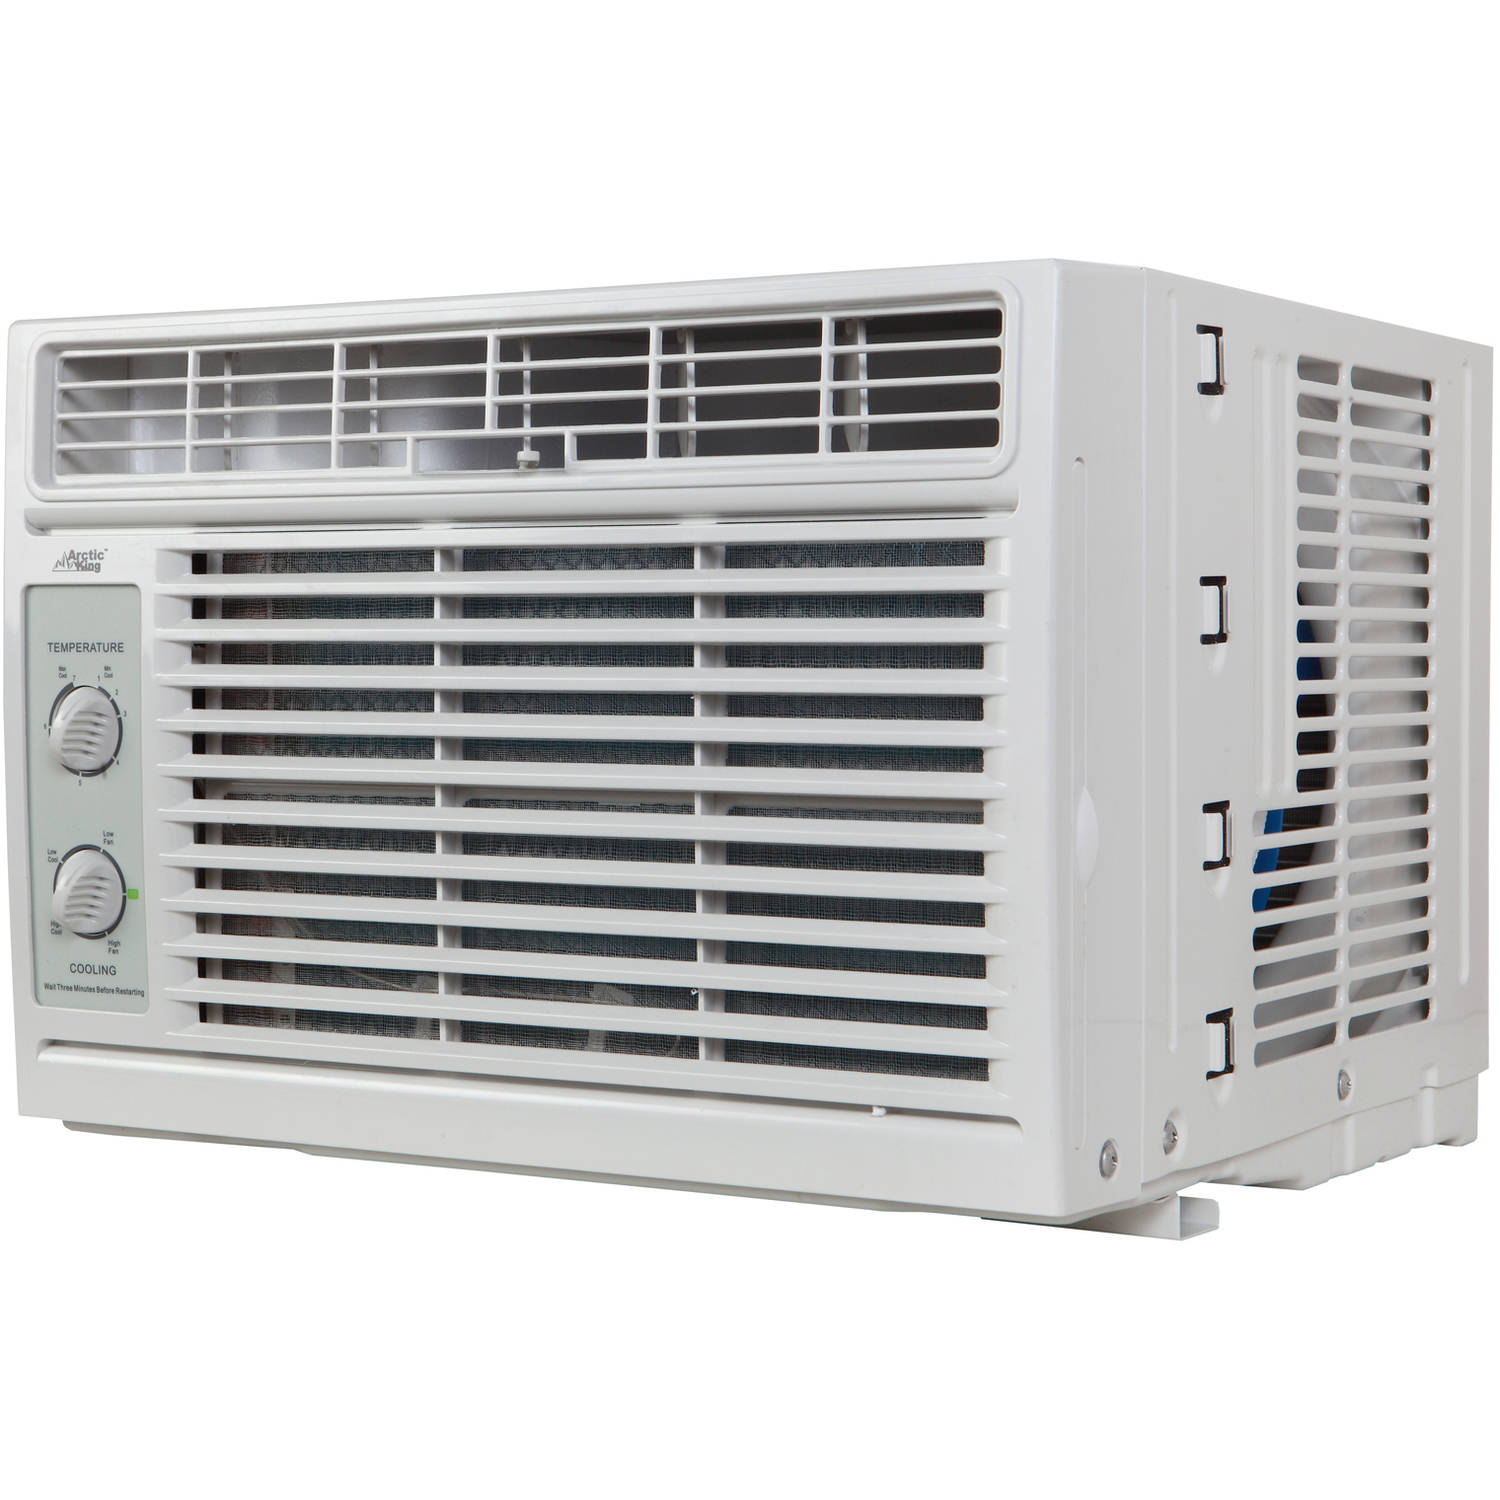 Arctic King 5,000 BTU Window Air Conditioner, 115V, WWK05CM61N